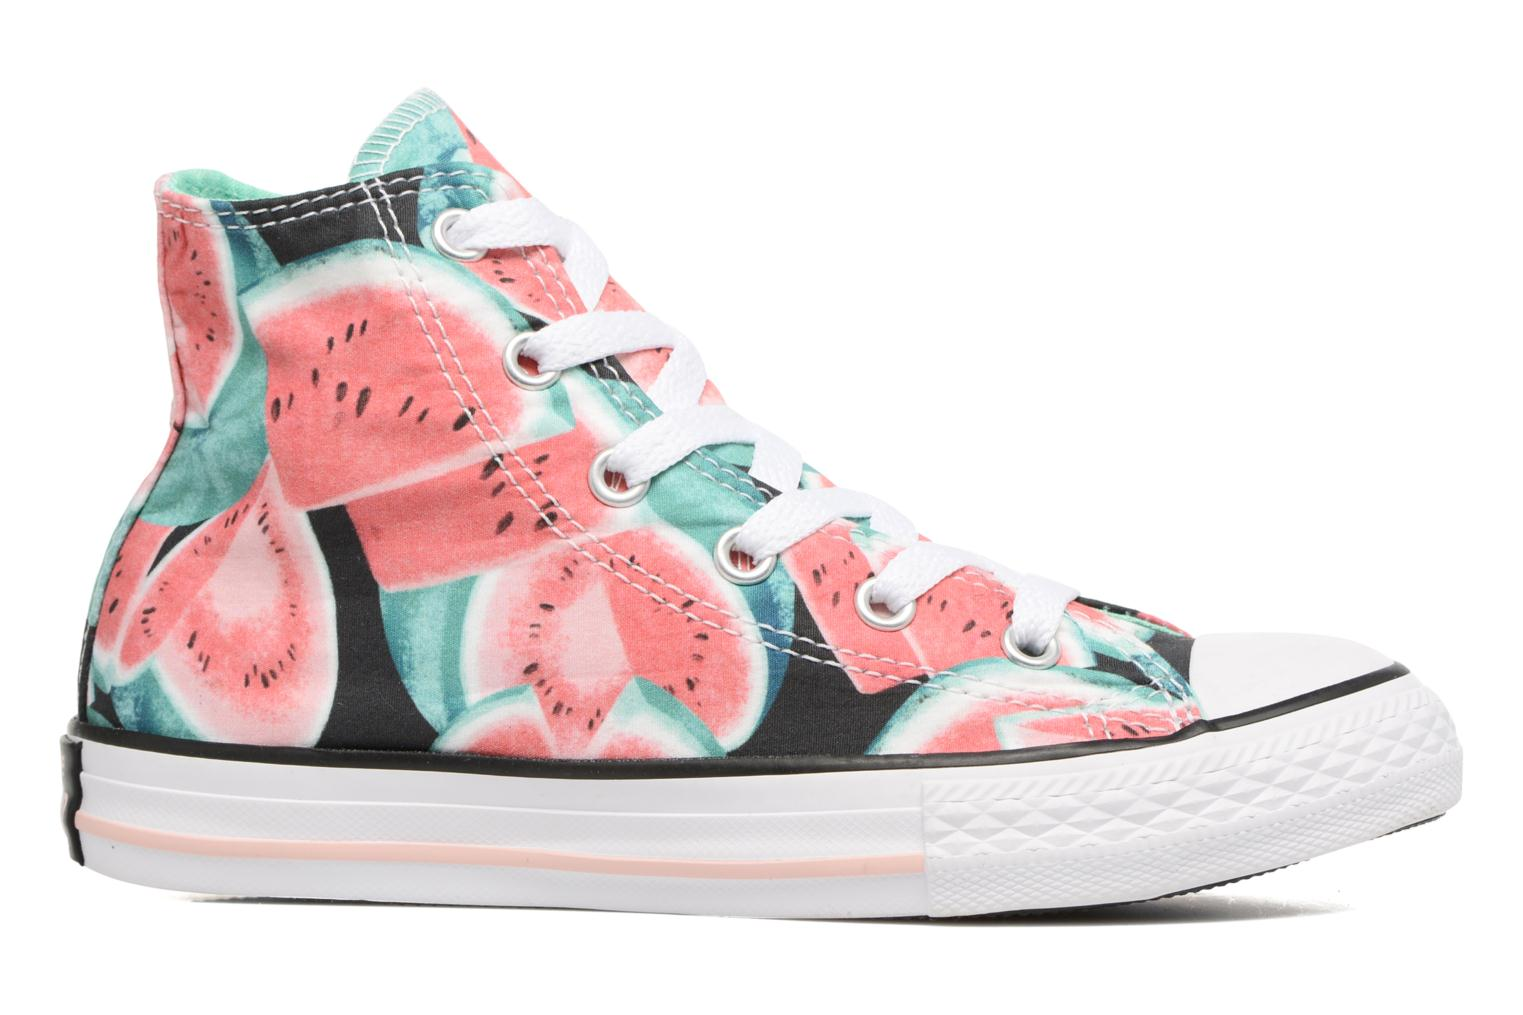 Chuck Taylor All Star Hi Vapor Pink/Green Glow/White